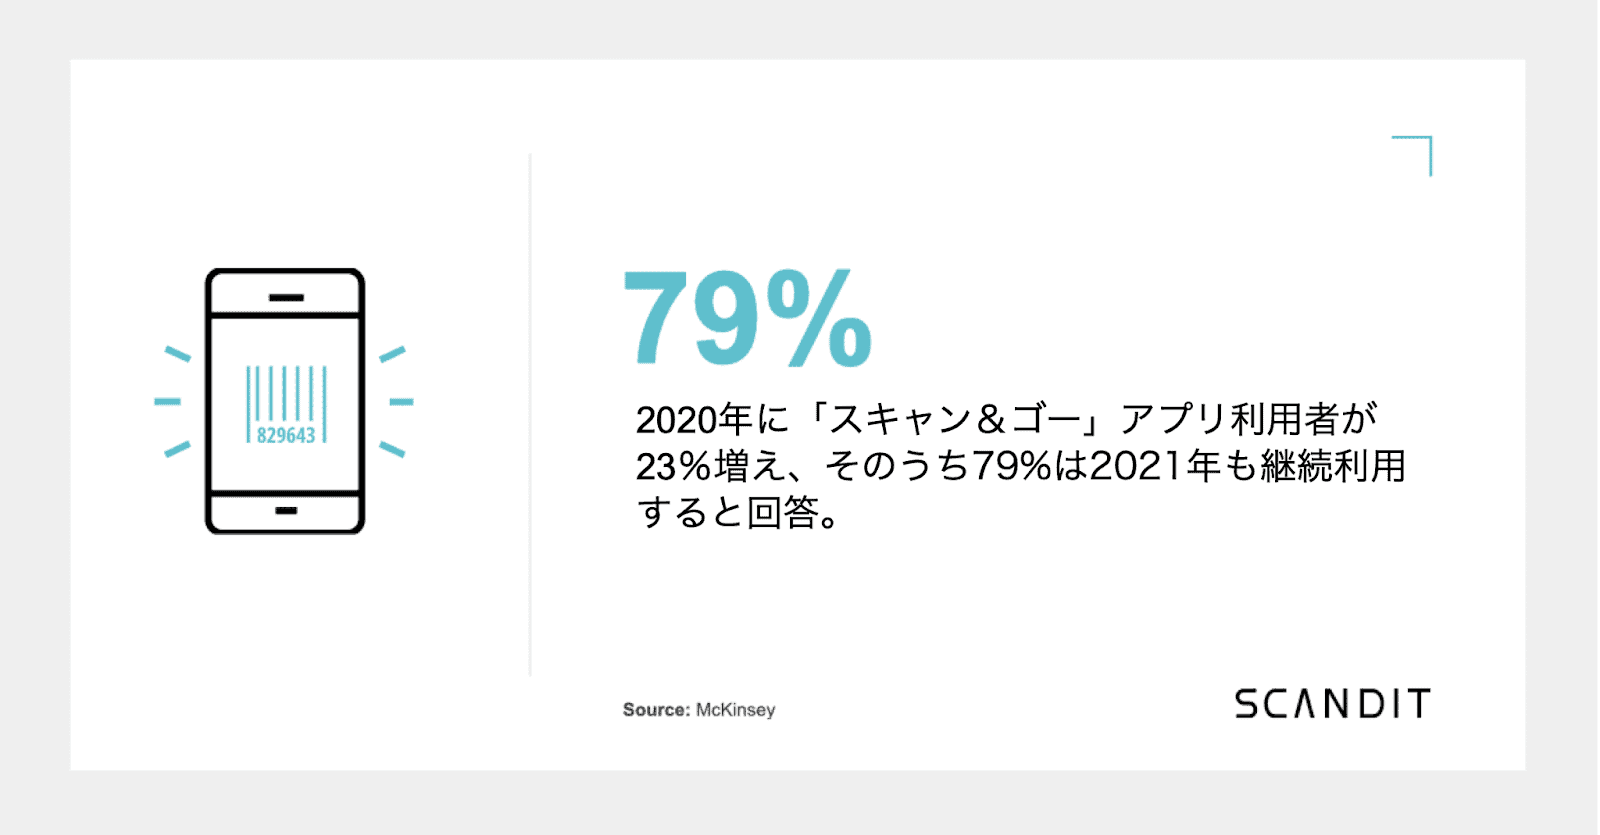 Following a 23% increase in Scan & Go in 2020, 79% of US users intend to stay with it in 2021